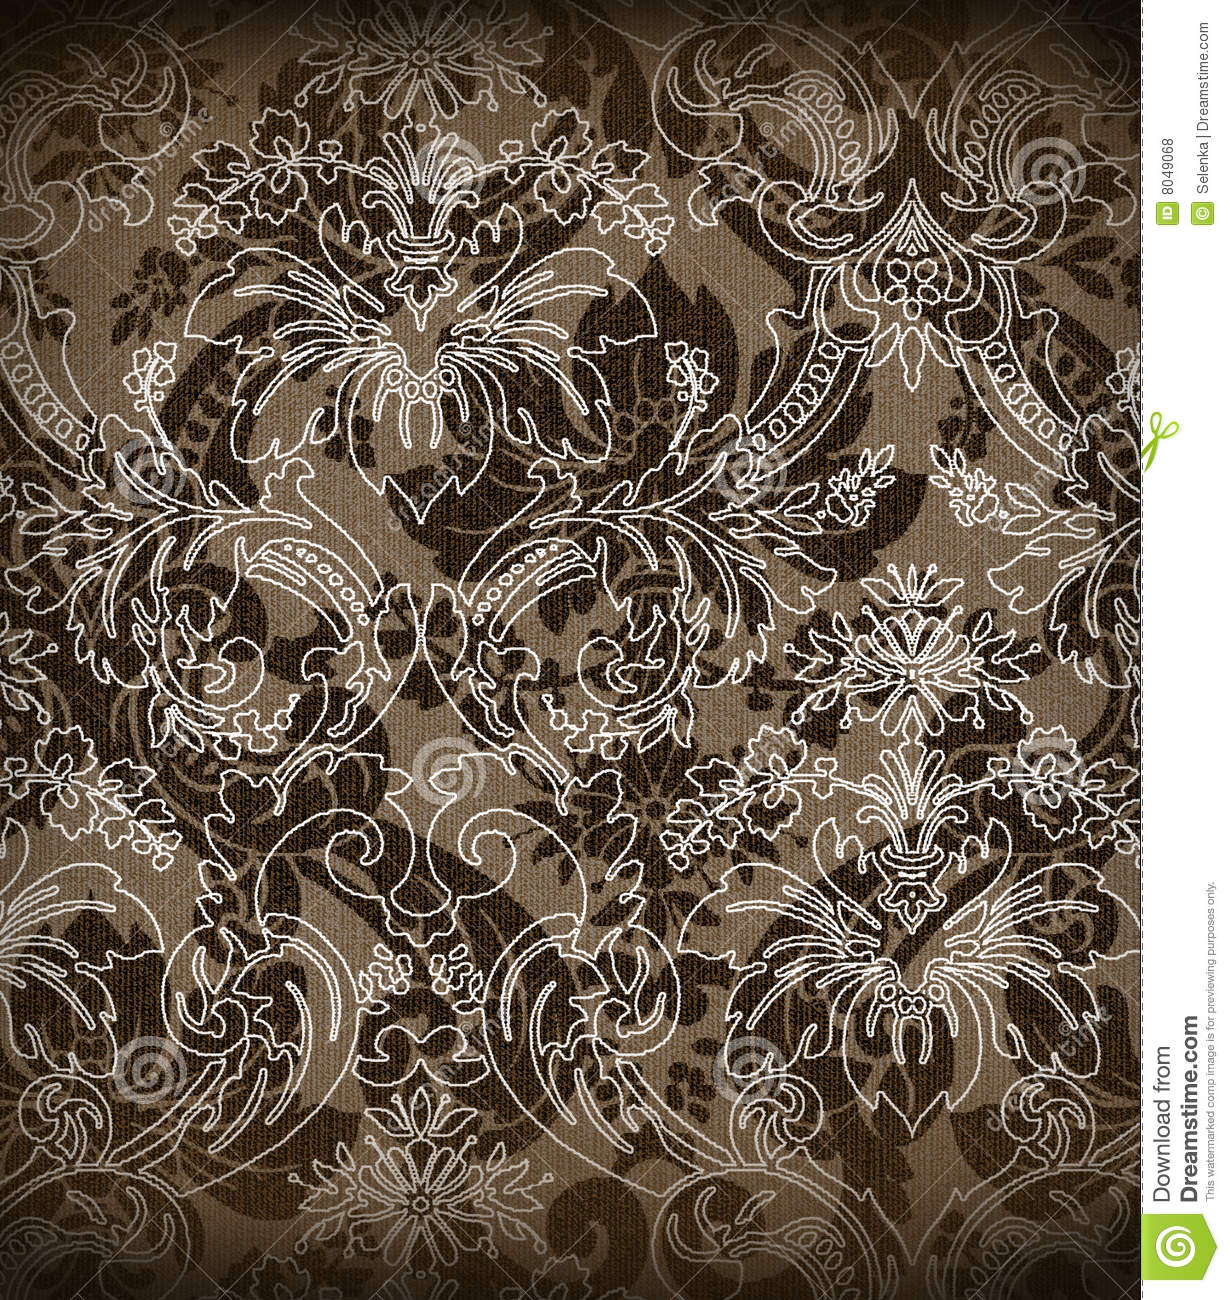 decorative renaissance background royalty free stock